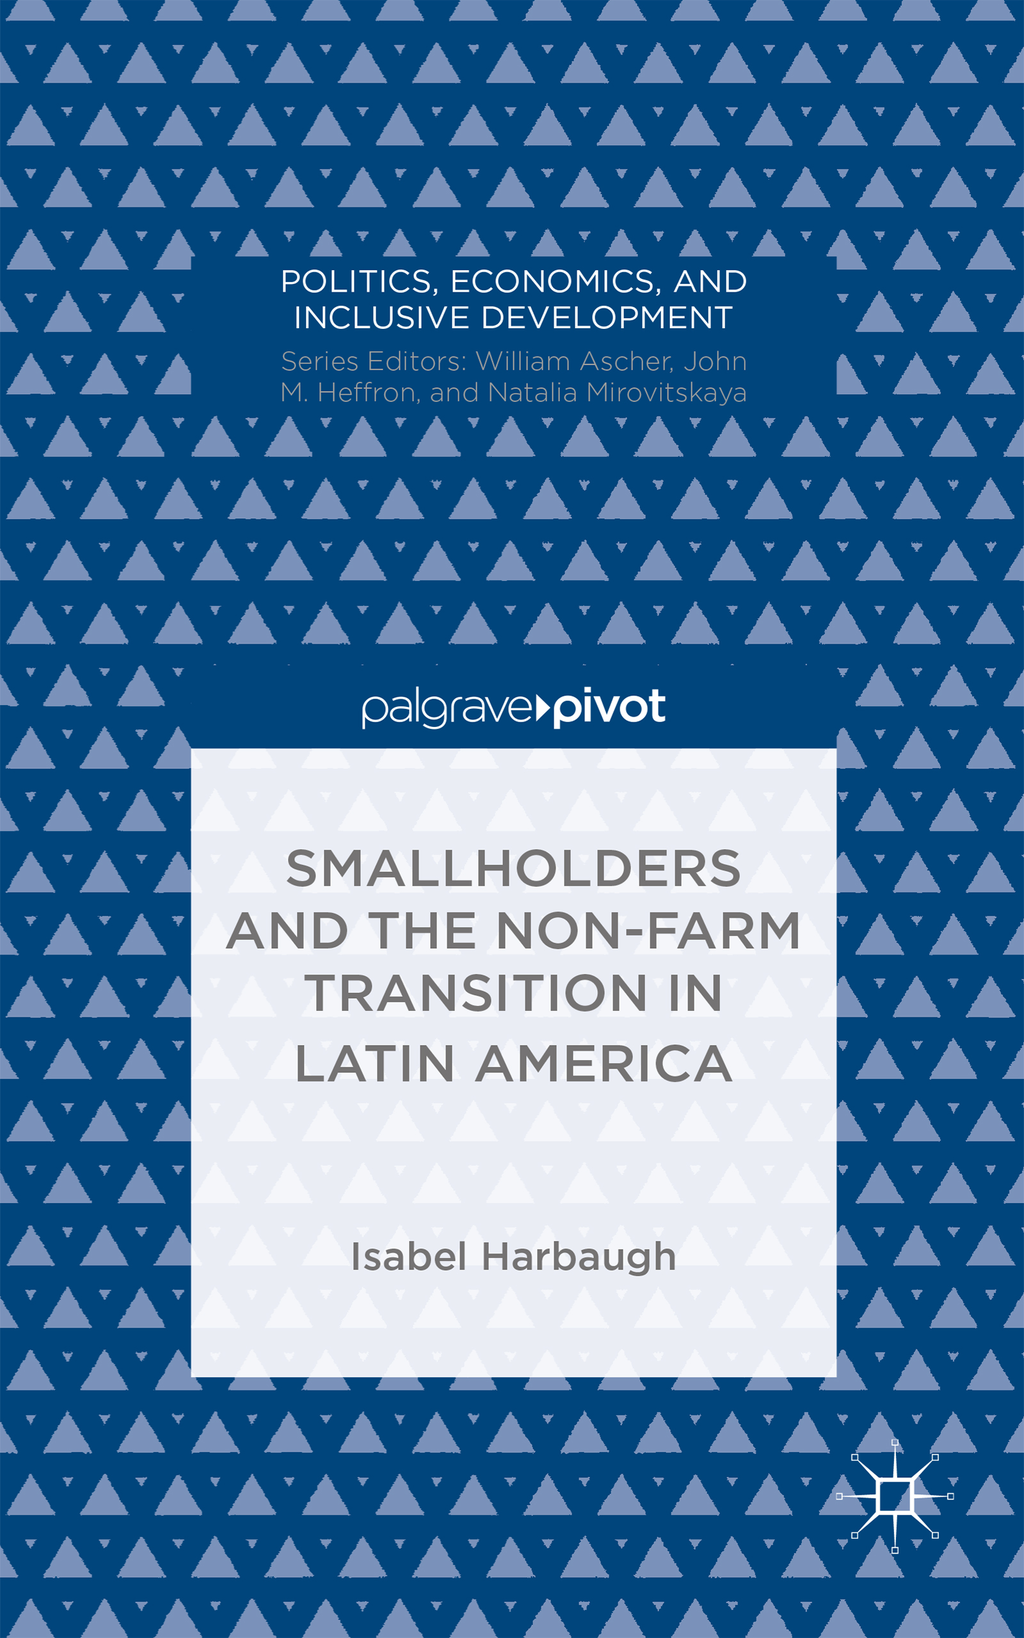 Smallholders and the Non-Farm Transition in Latin America